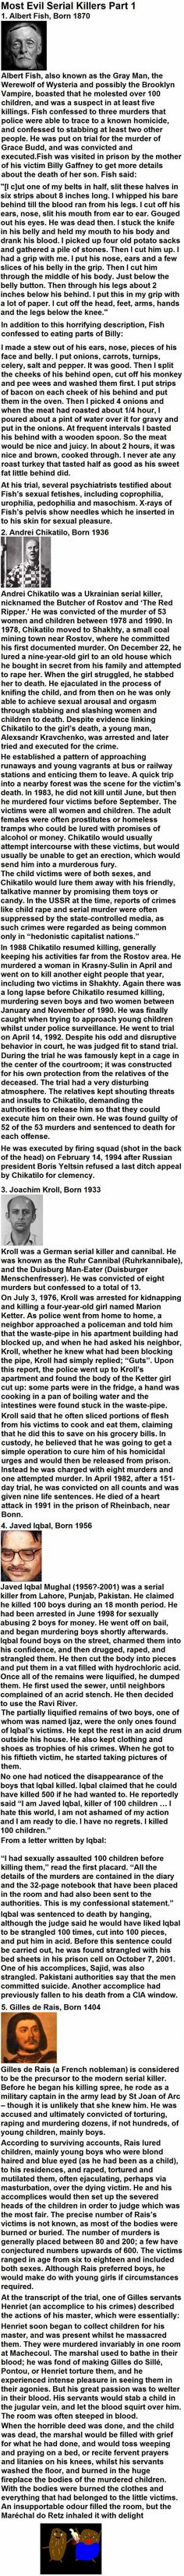 Most Evil Serial Killers Part 1 Scary Creepy Stories, Creepy Facts, Strange History, History Facts, Art History, True Crime, Famous Serial Killers, Natural Born Killers, Cereal Killer